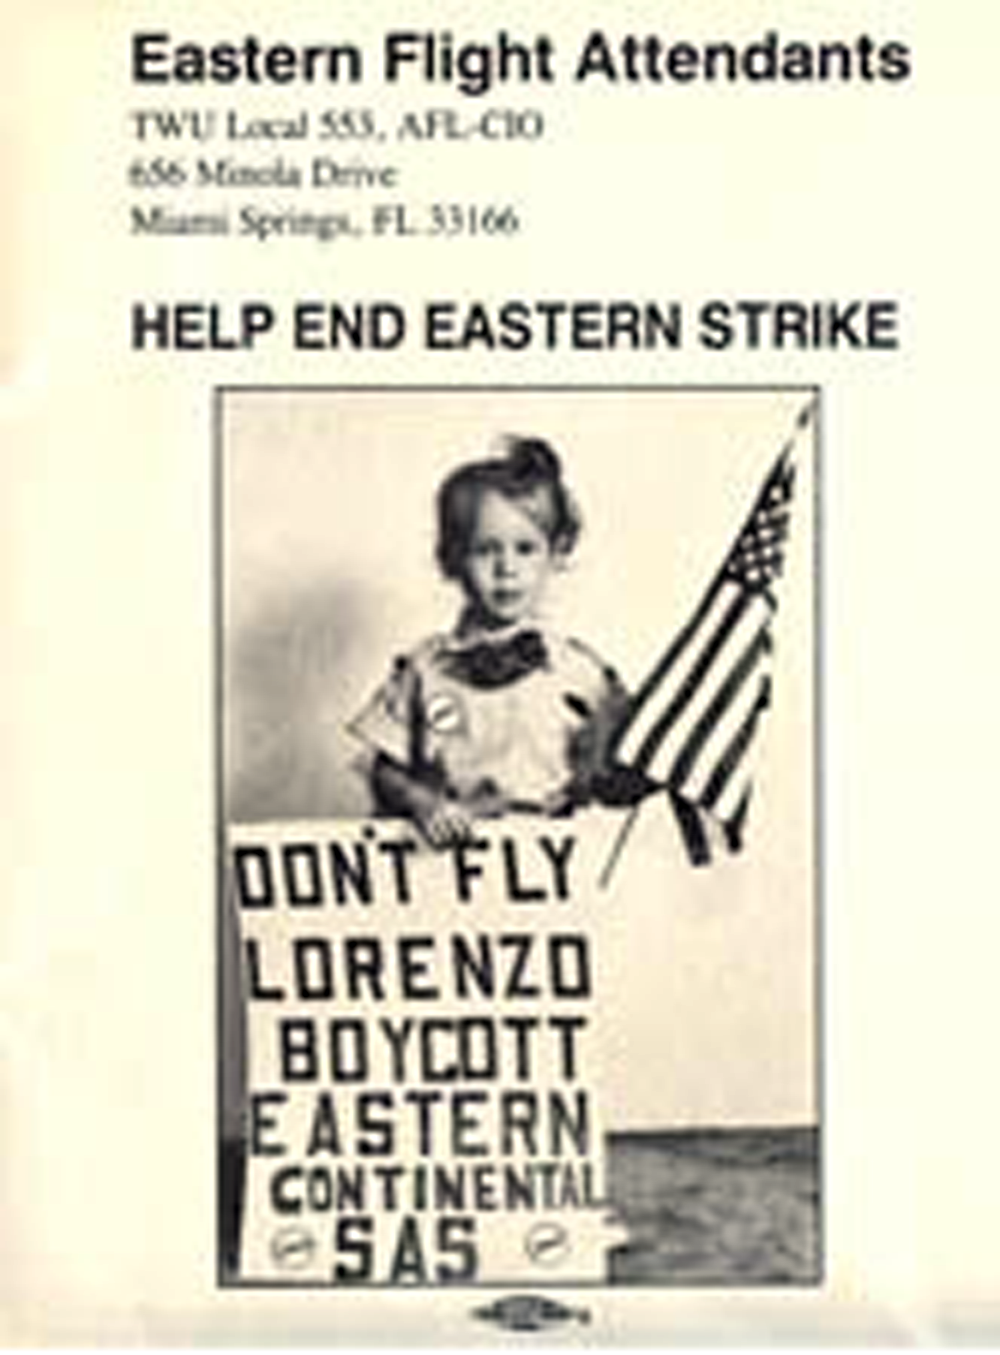 TWU local 553 vs. Eastern Airlines:1989